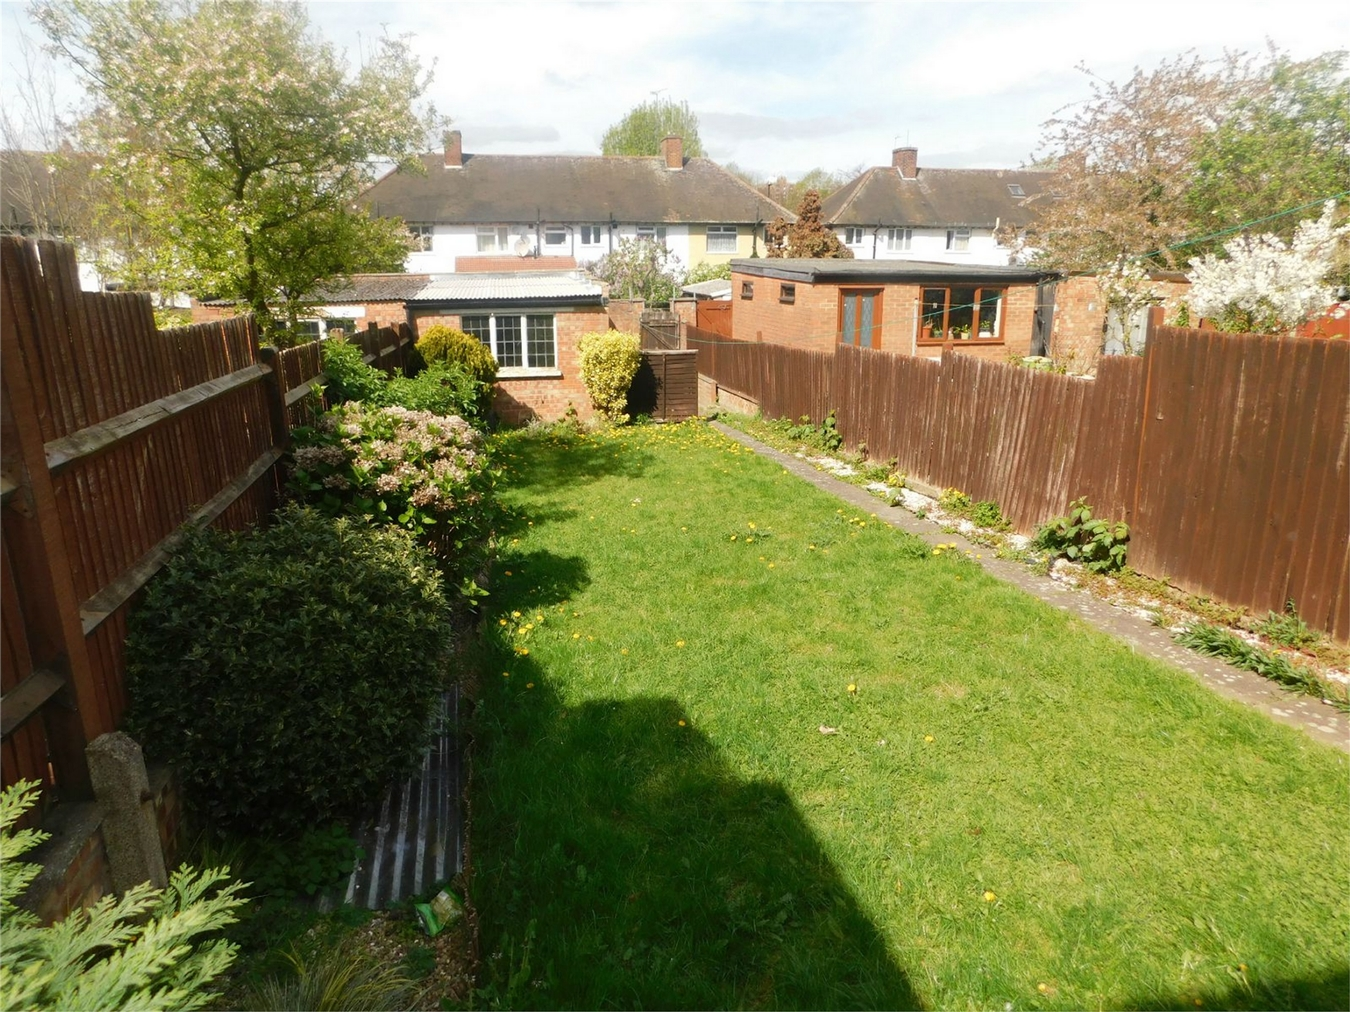 3 Bedroom Terraced House For Sale In Northolt